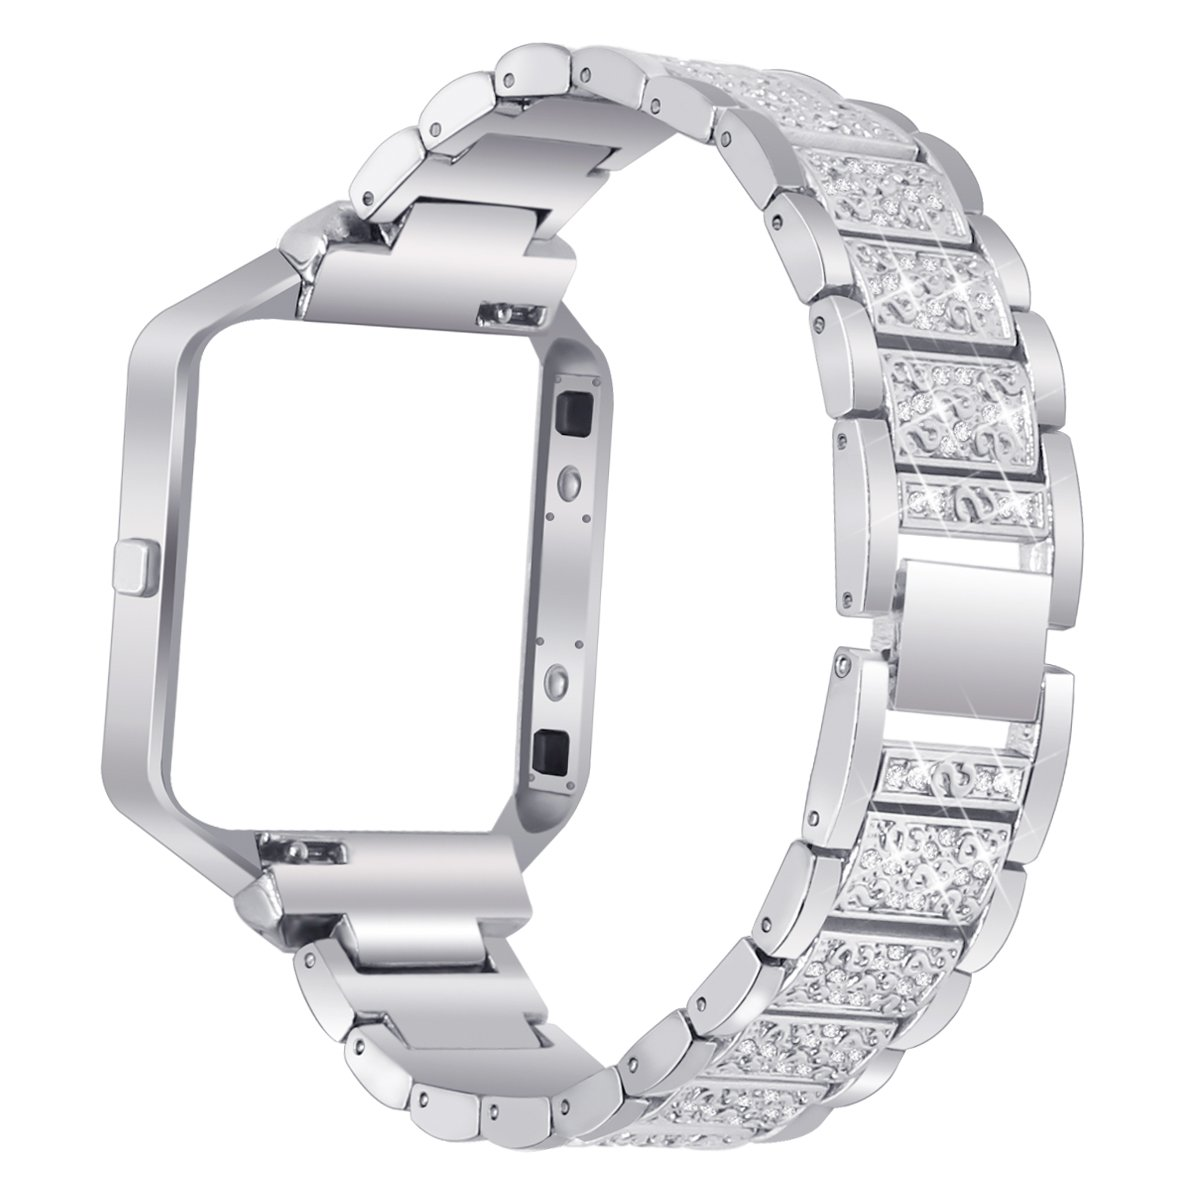 Stainless Steel Bands for Fitbit Blaze Replacement Band Strap with Rhinestone Bracelet Smart Watch Silver